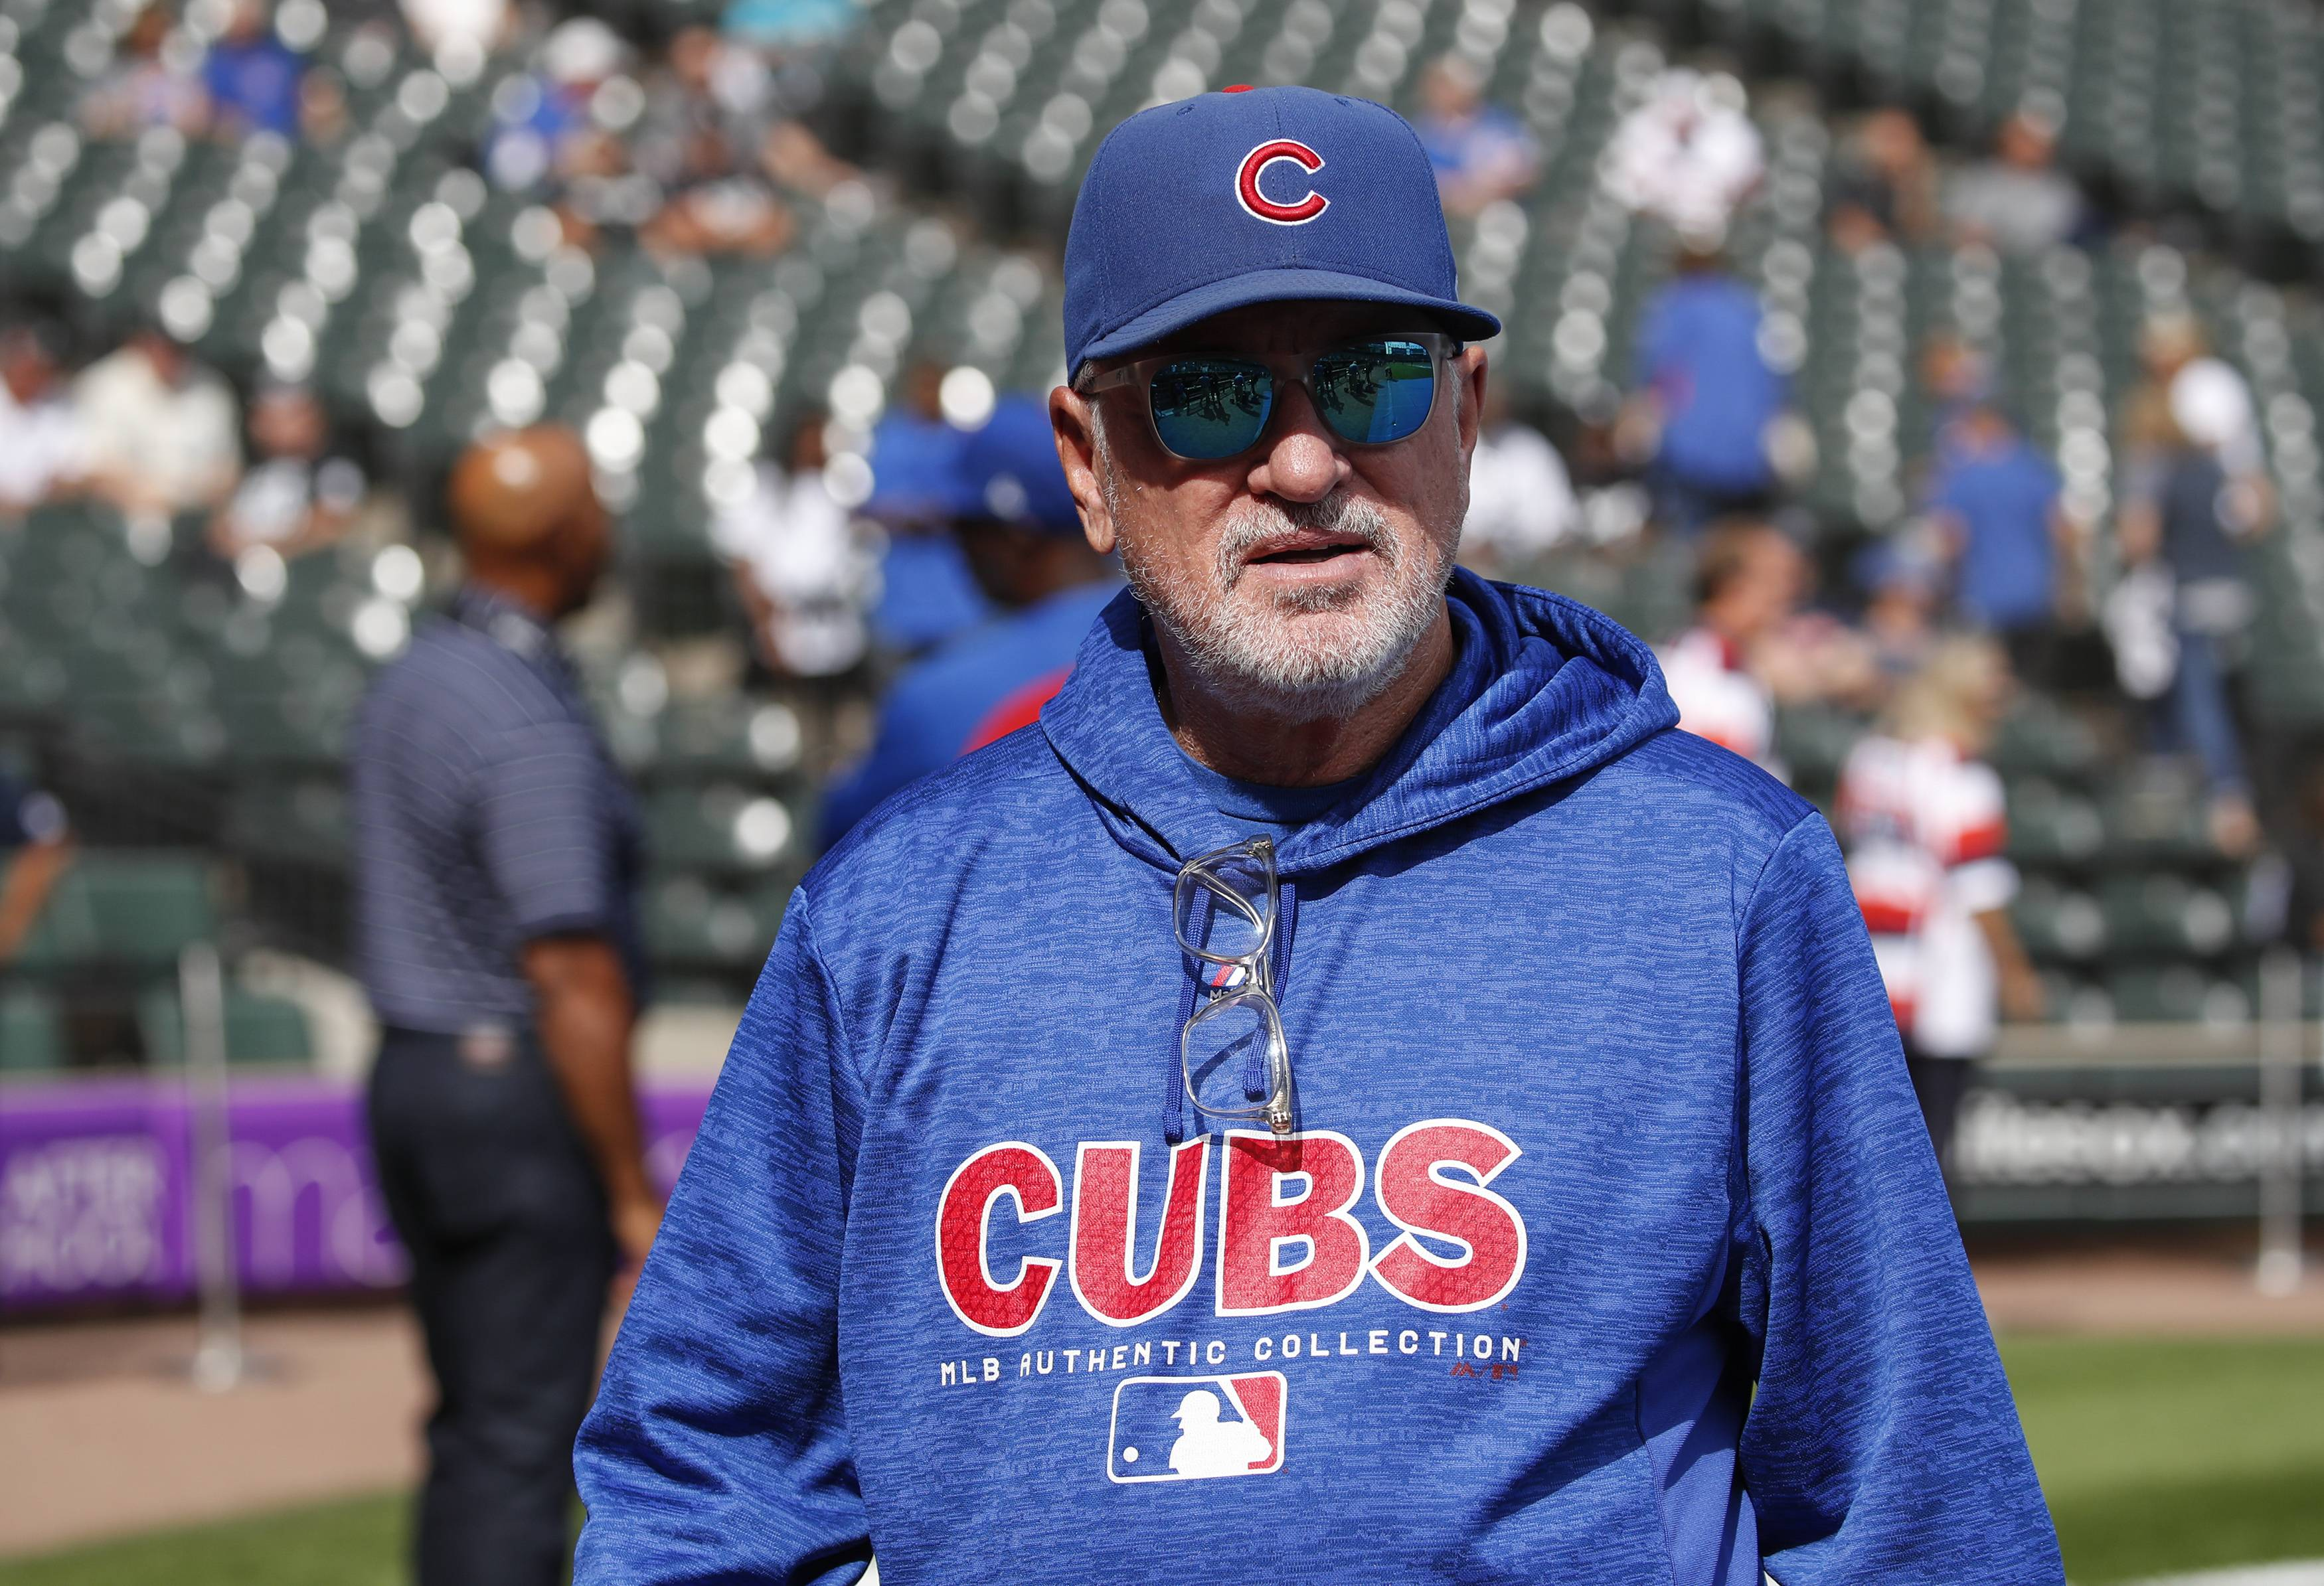 Chicago Cubs manager Joe Maddon walks on the field before a baseball game against the Chicago White Sox, Friday, Sept. 21, 2018, in Chicago.